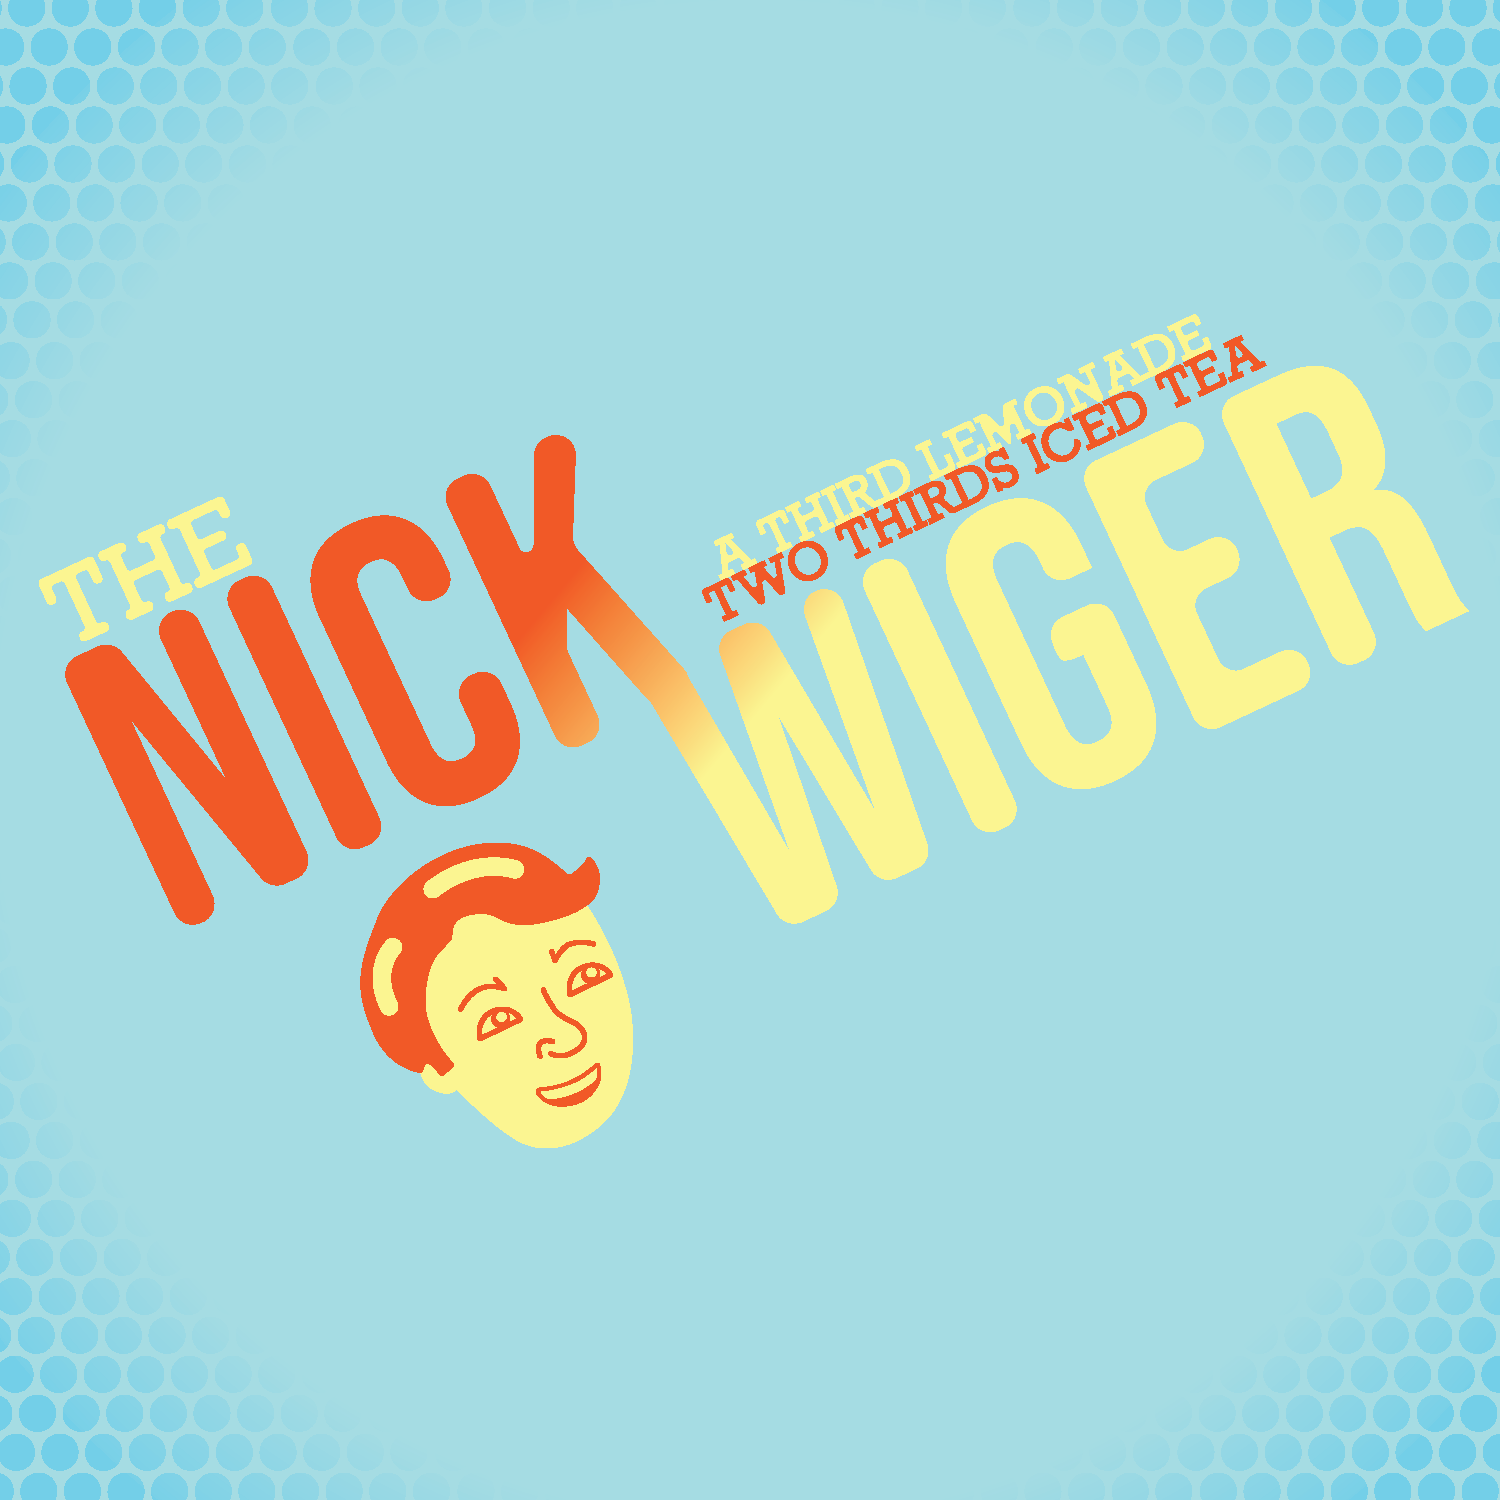 The Nick Wiger-01.png